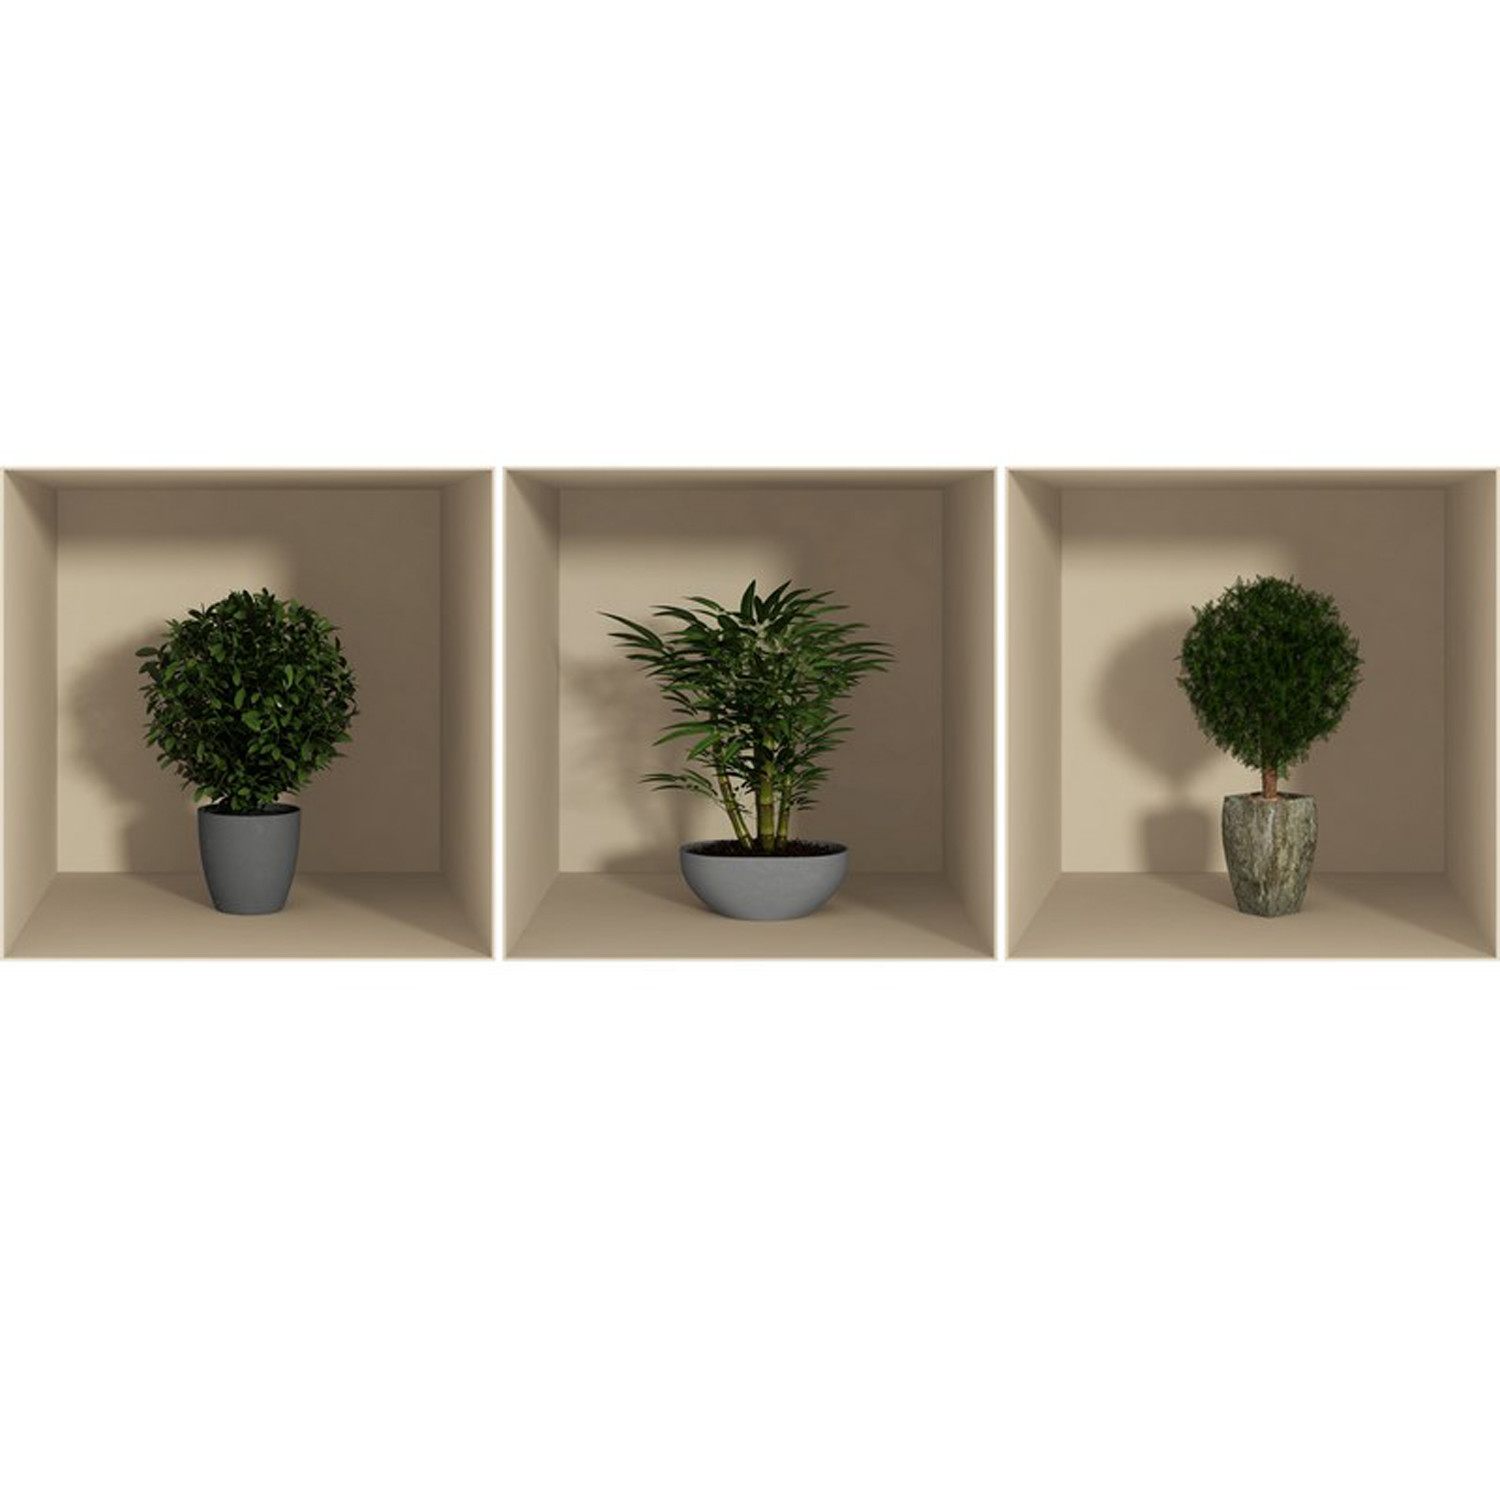 Small bushes ambiance sticker touch of modern for Small bushy trees